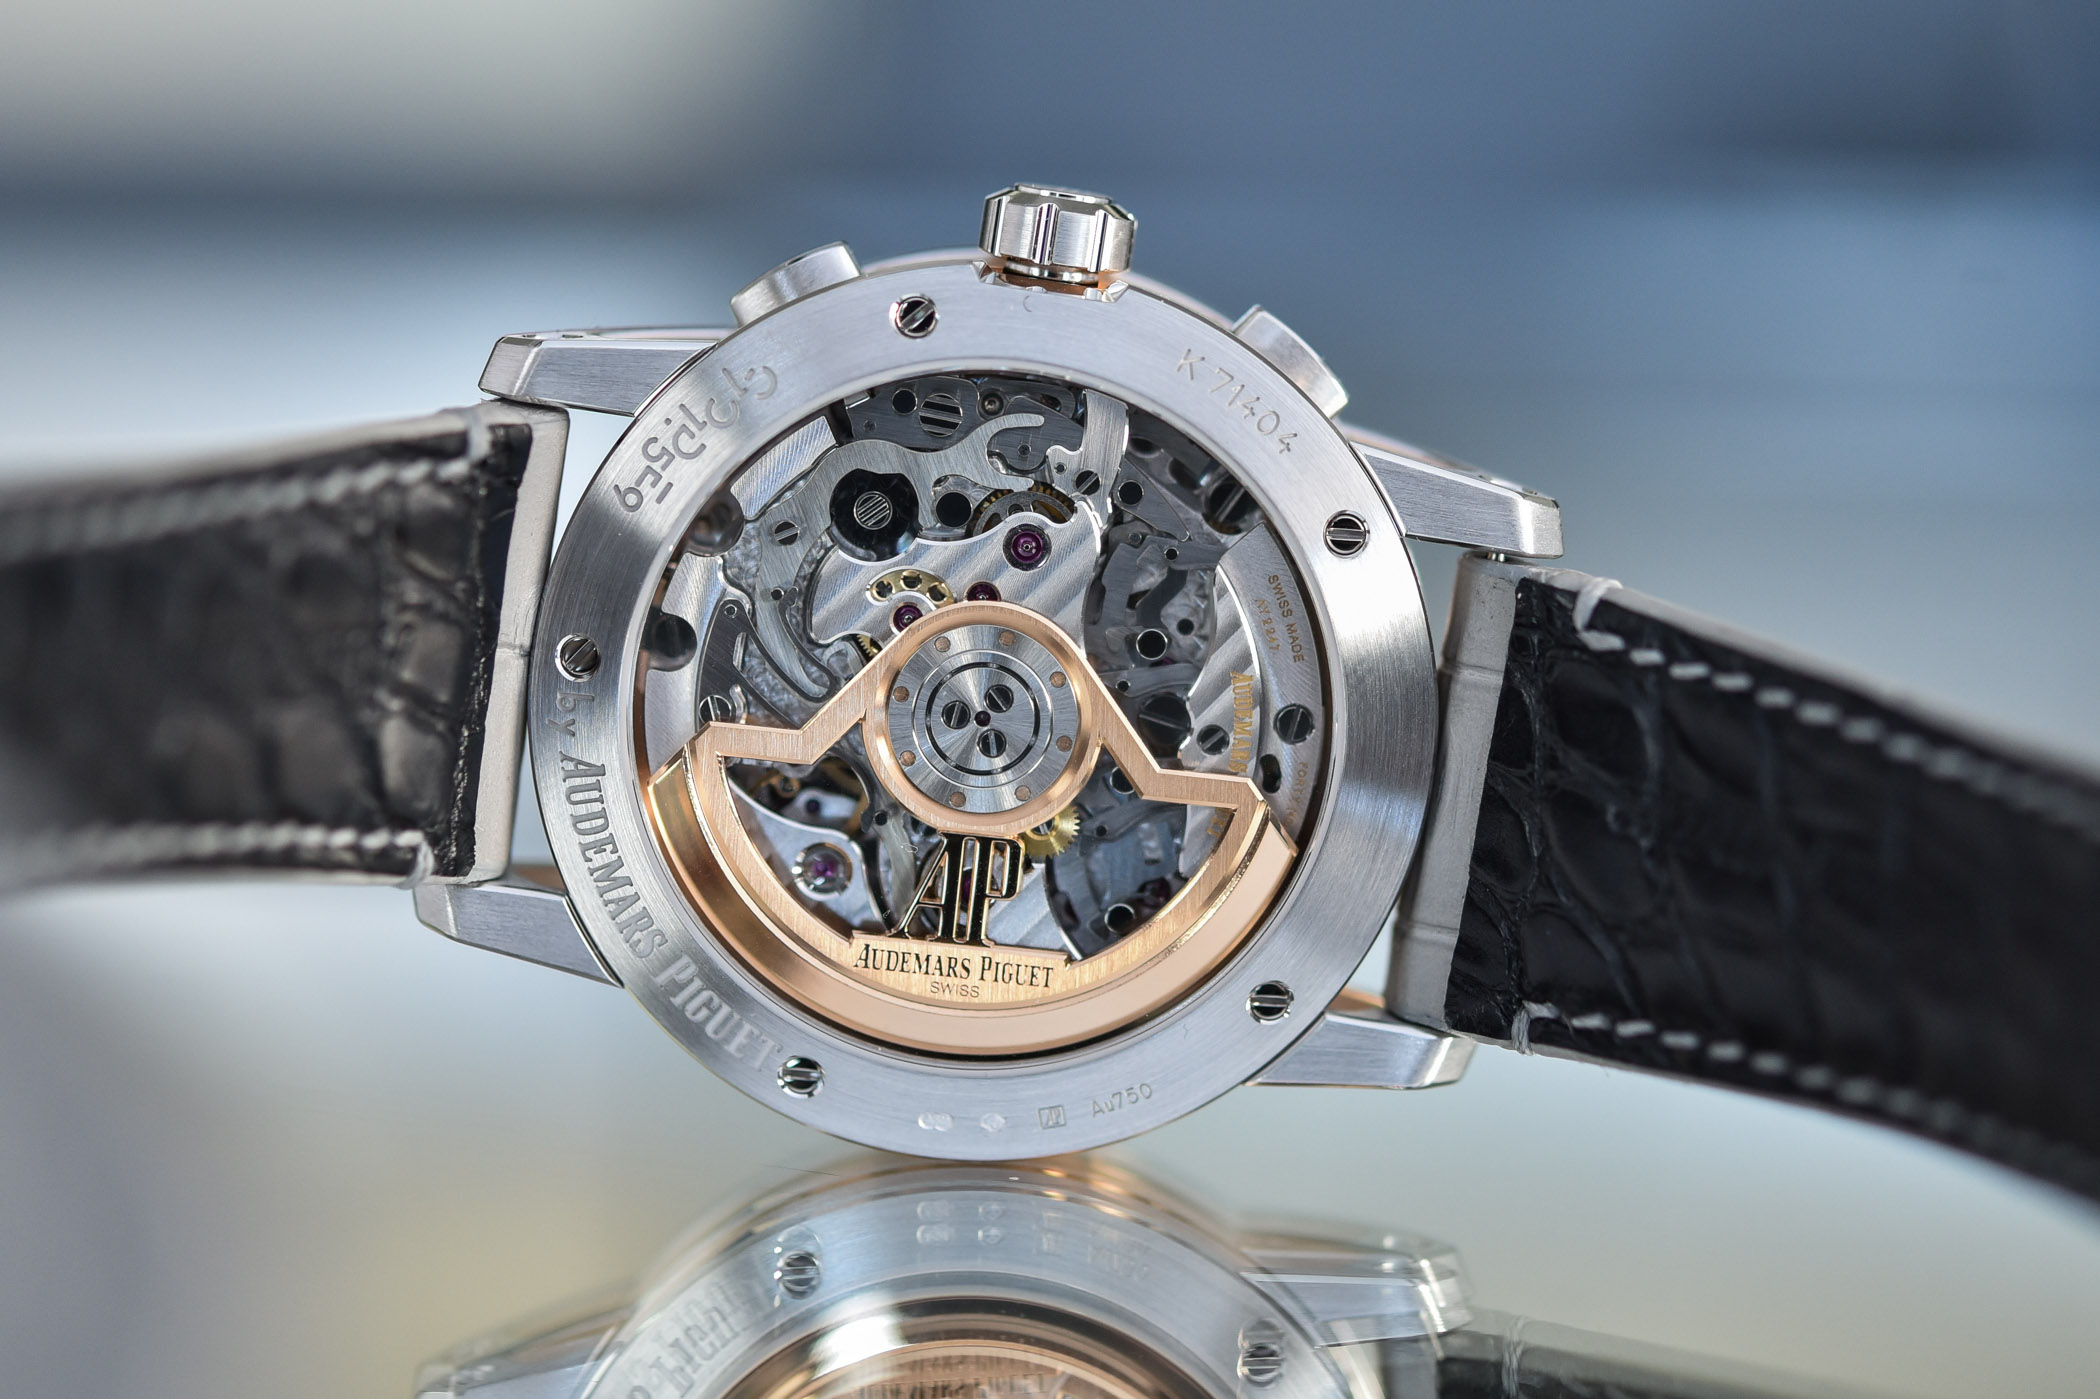 Code 11.59 By Audemars Piguet Smoked Lacquered Dial Two-Tone 2020